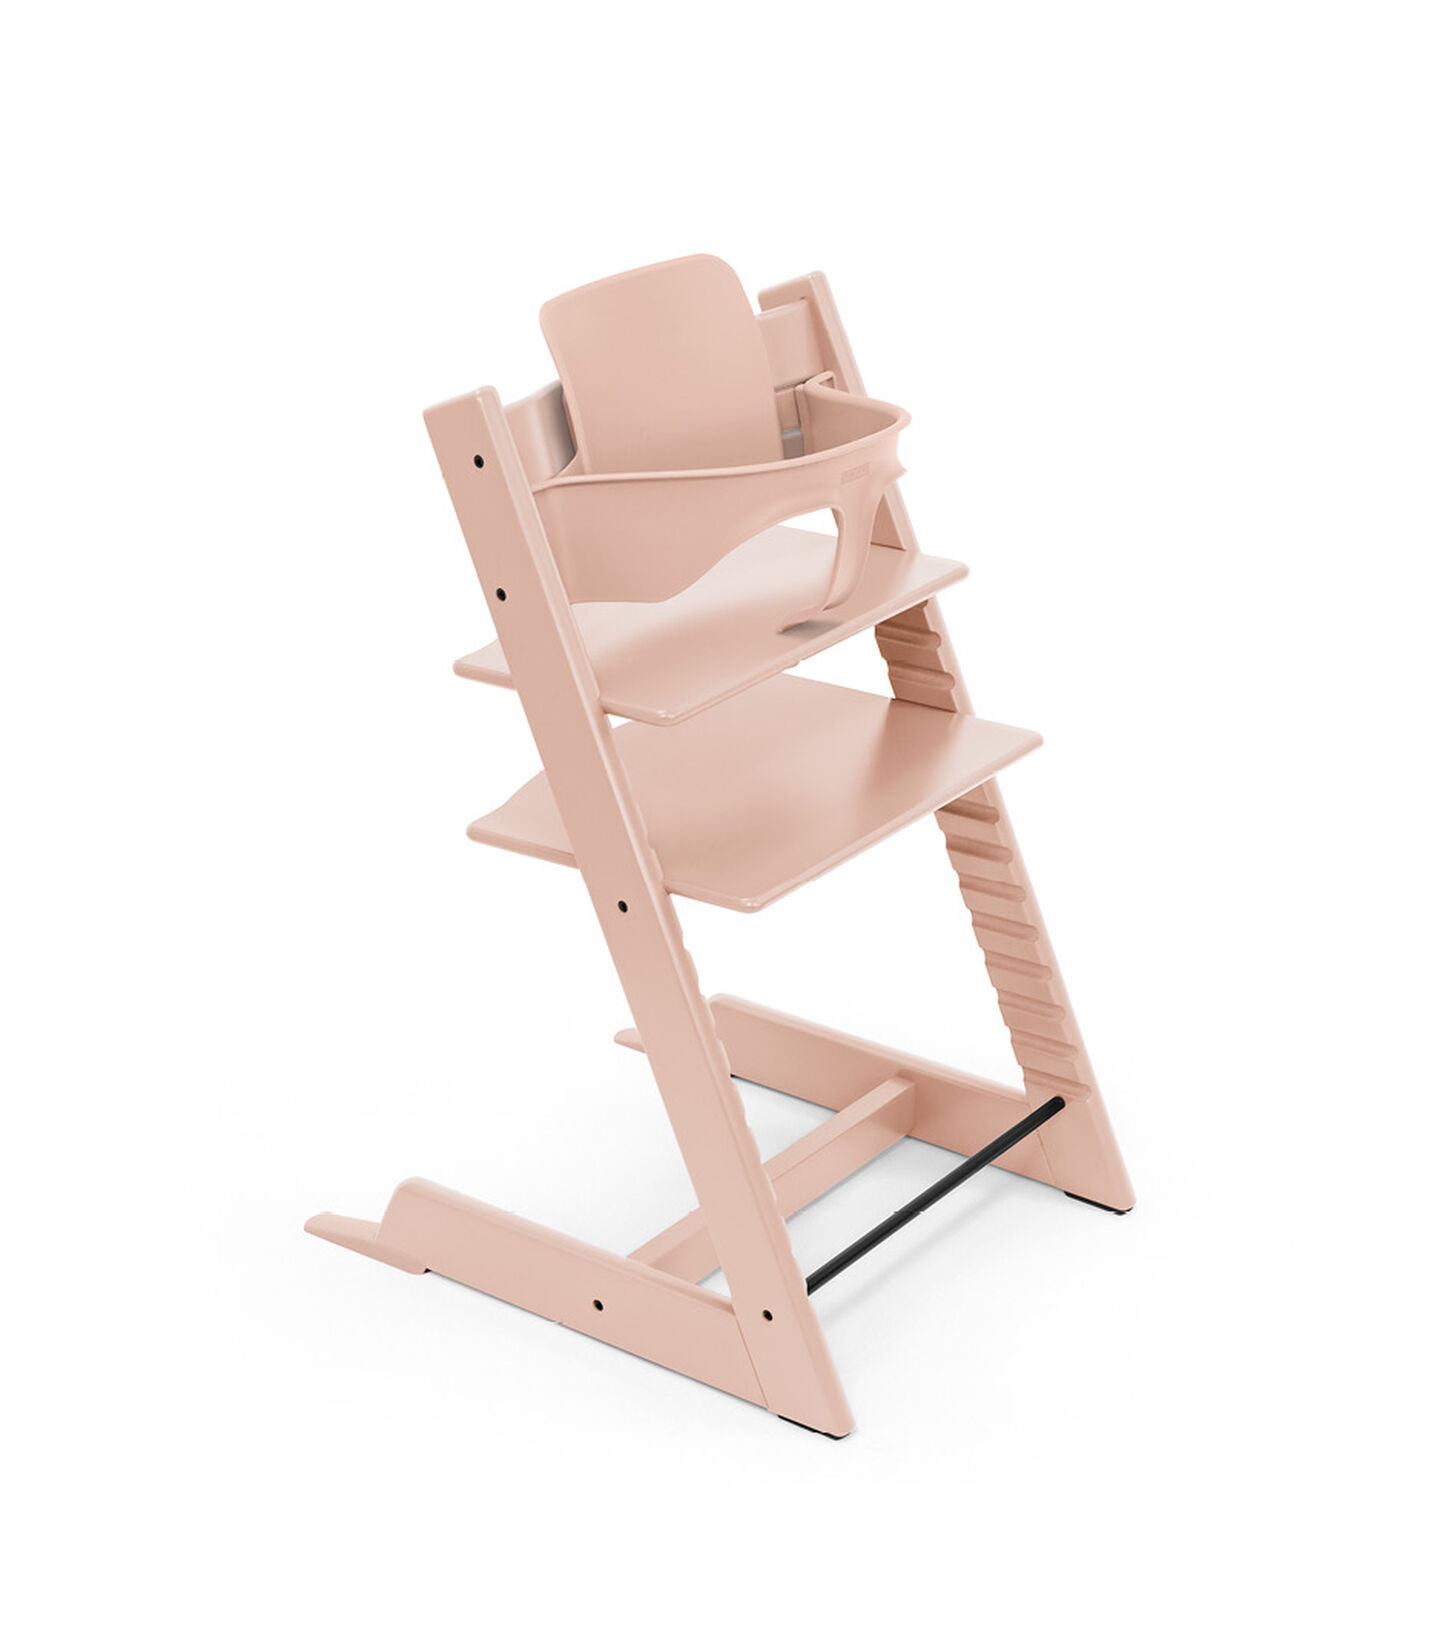 Tripp Trapp® Chair Serene Pink, Serene Pink, mainview view 5